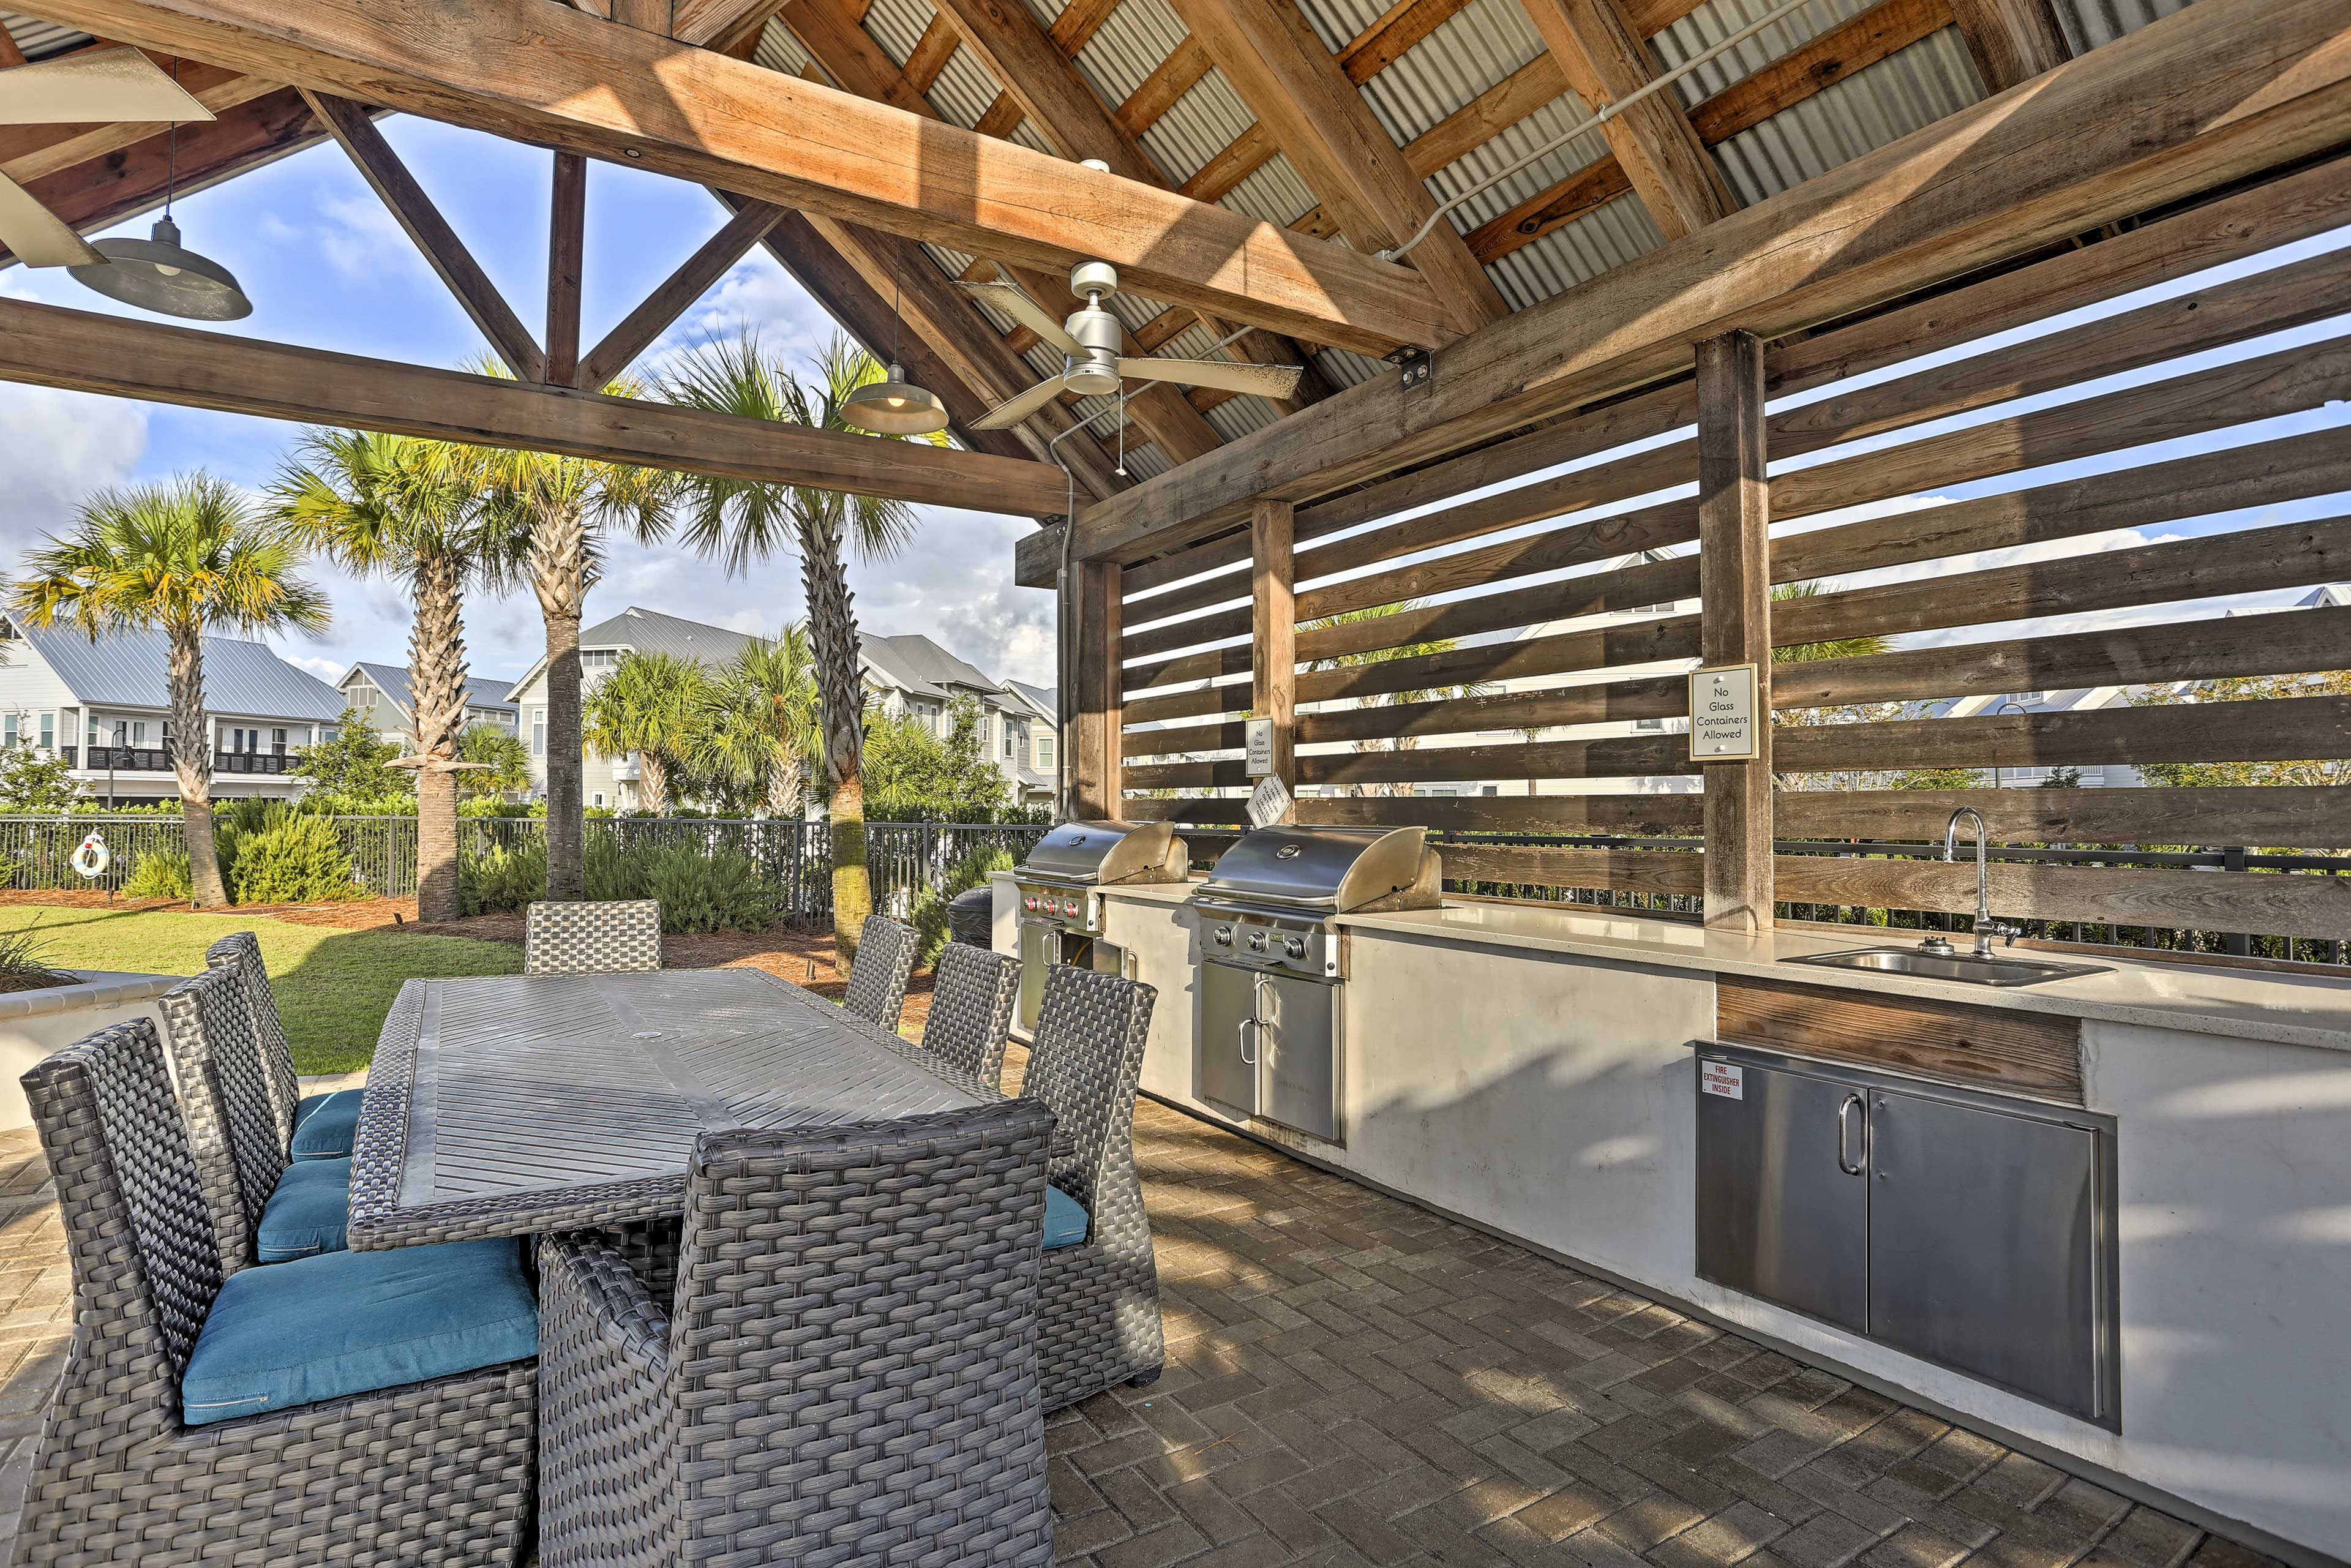 Host a cookout at the picnic area with gas grills and outdoor tables.